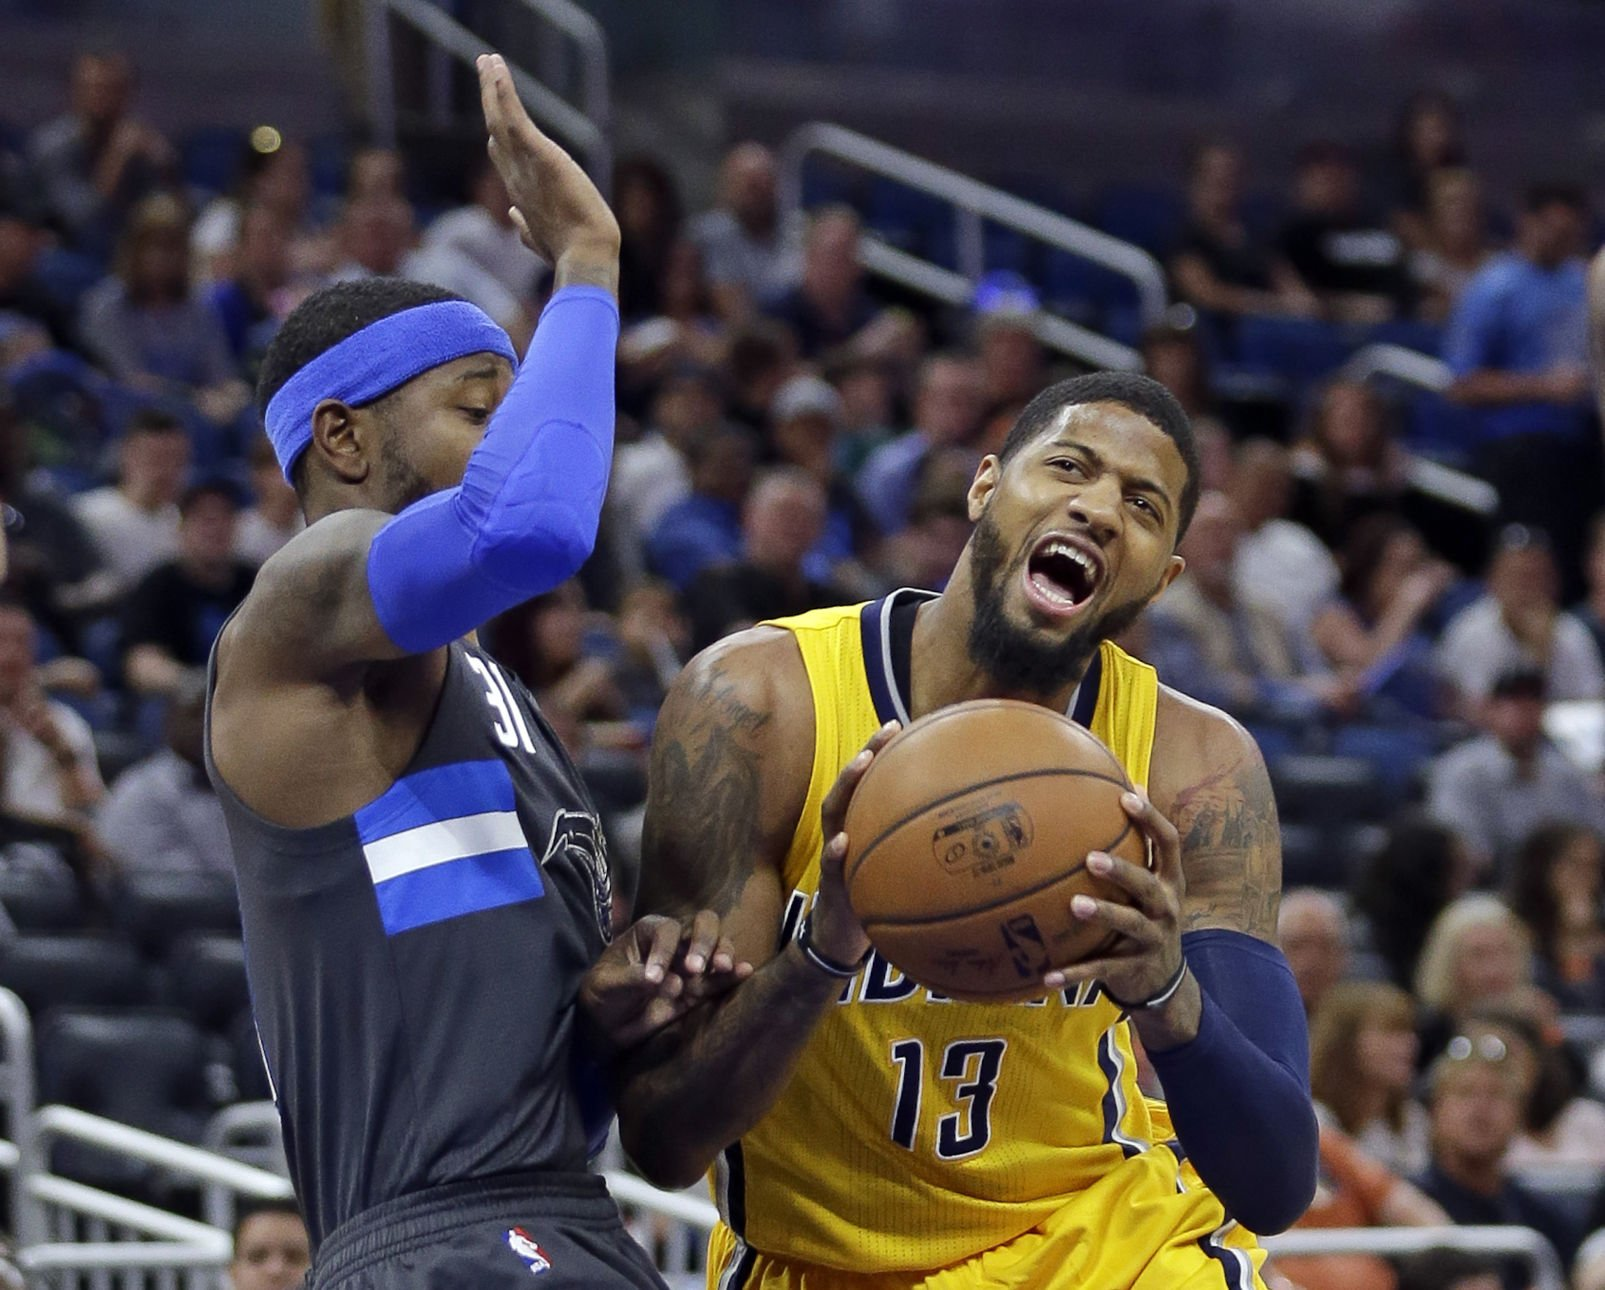 Lakers' Magic Johnson at center of National Basketball Association probe into Paul George tampering